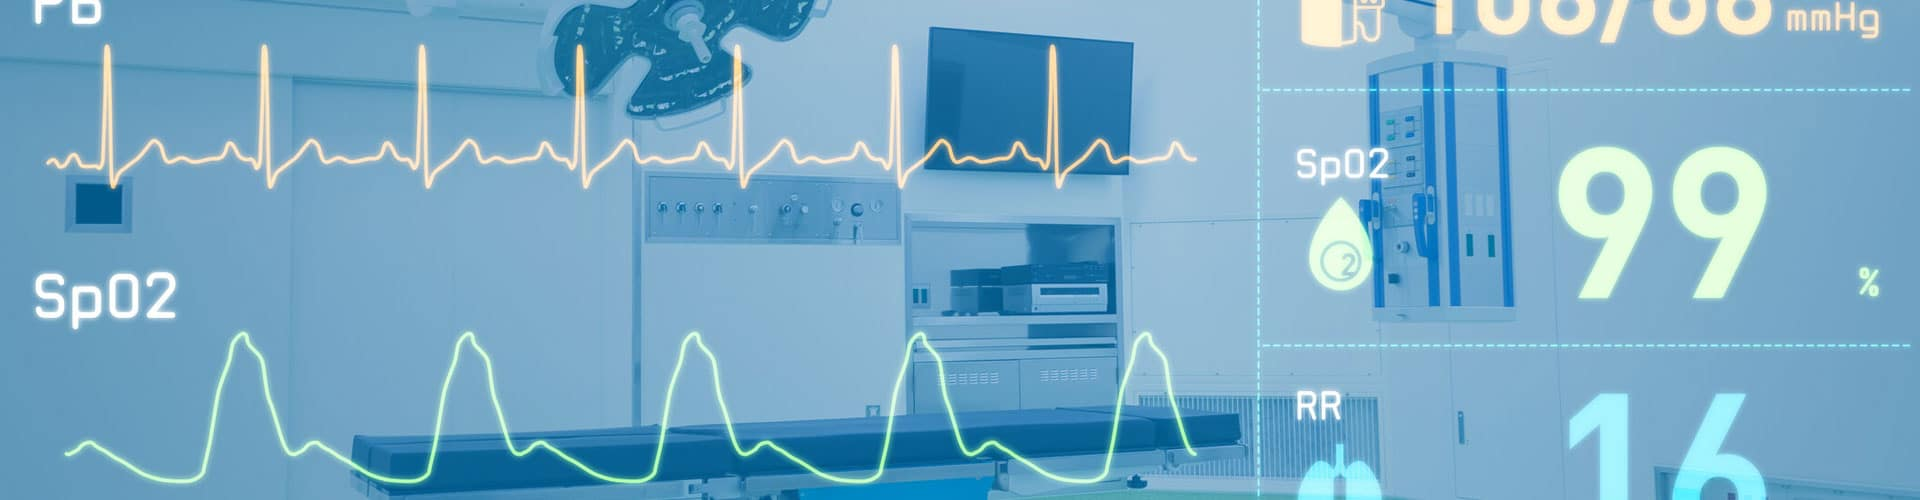 IoT Enabled Medical Devices